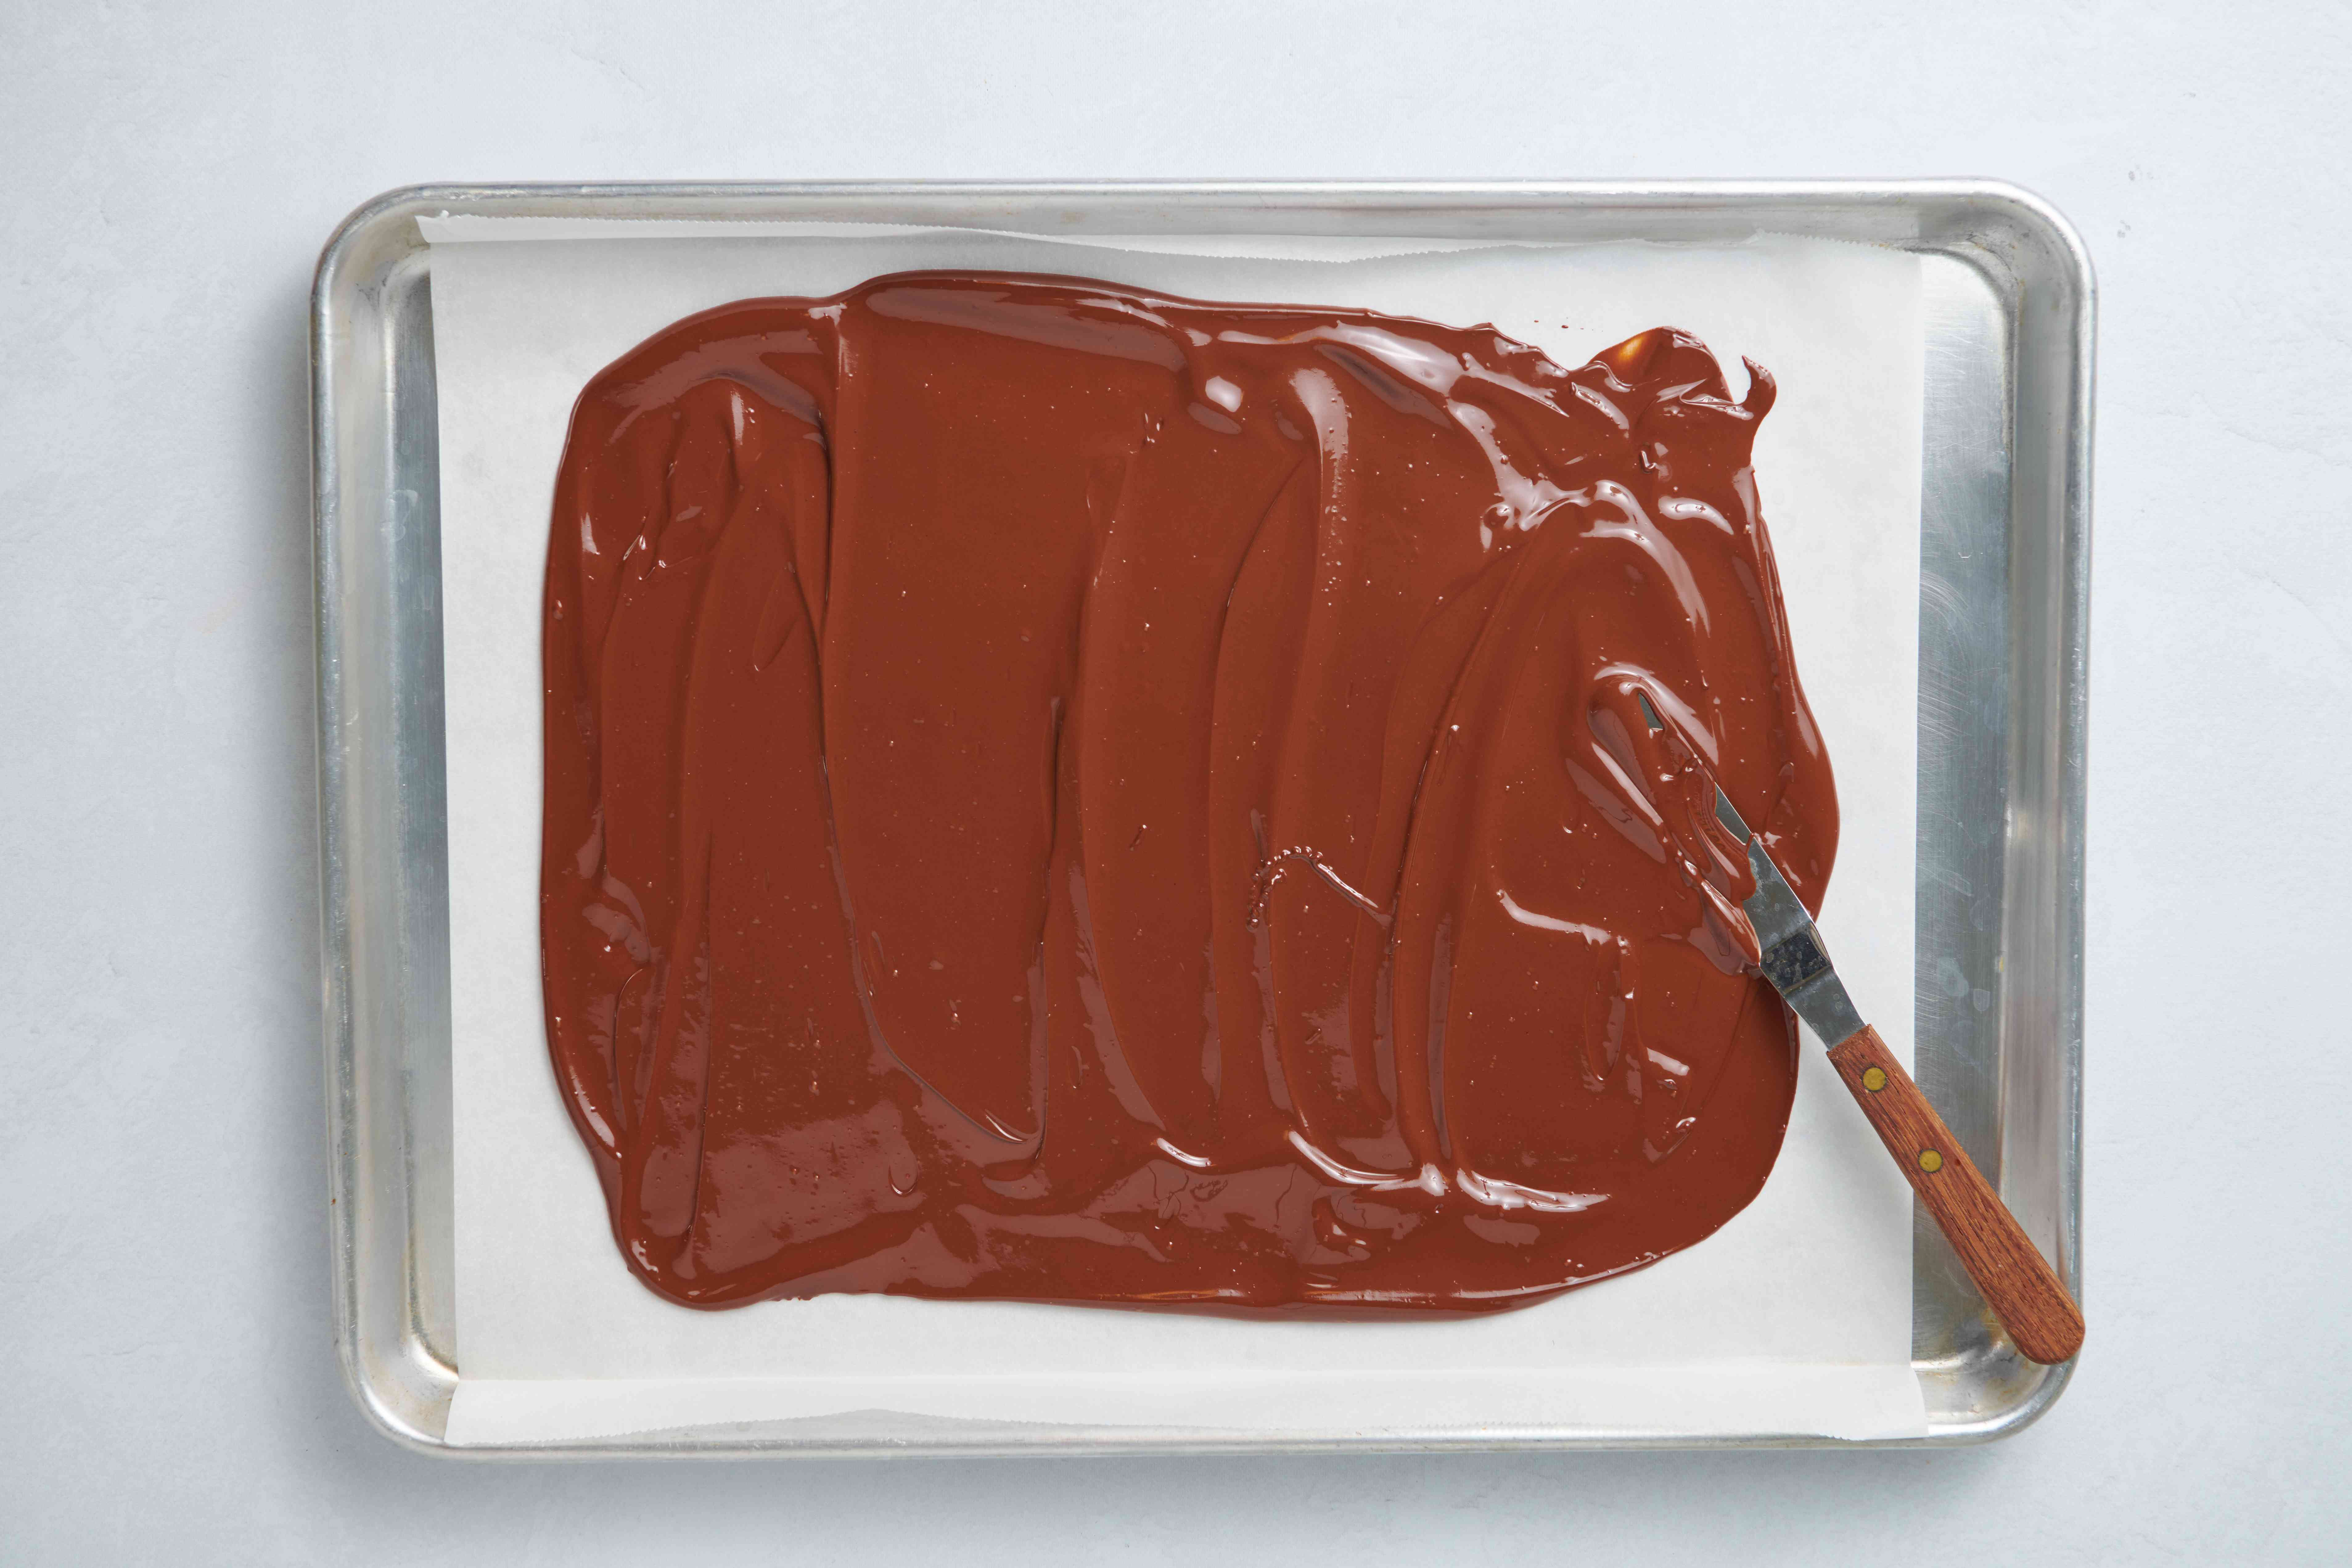 chocolate spread on a baking sheet